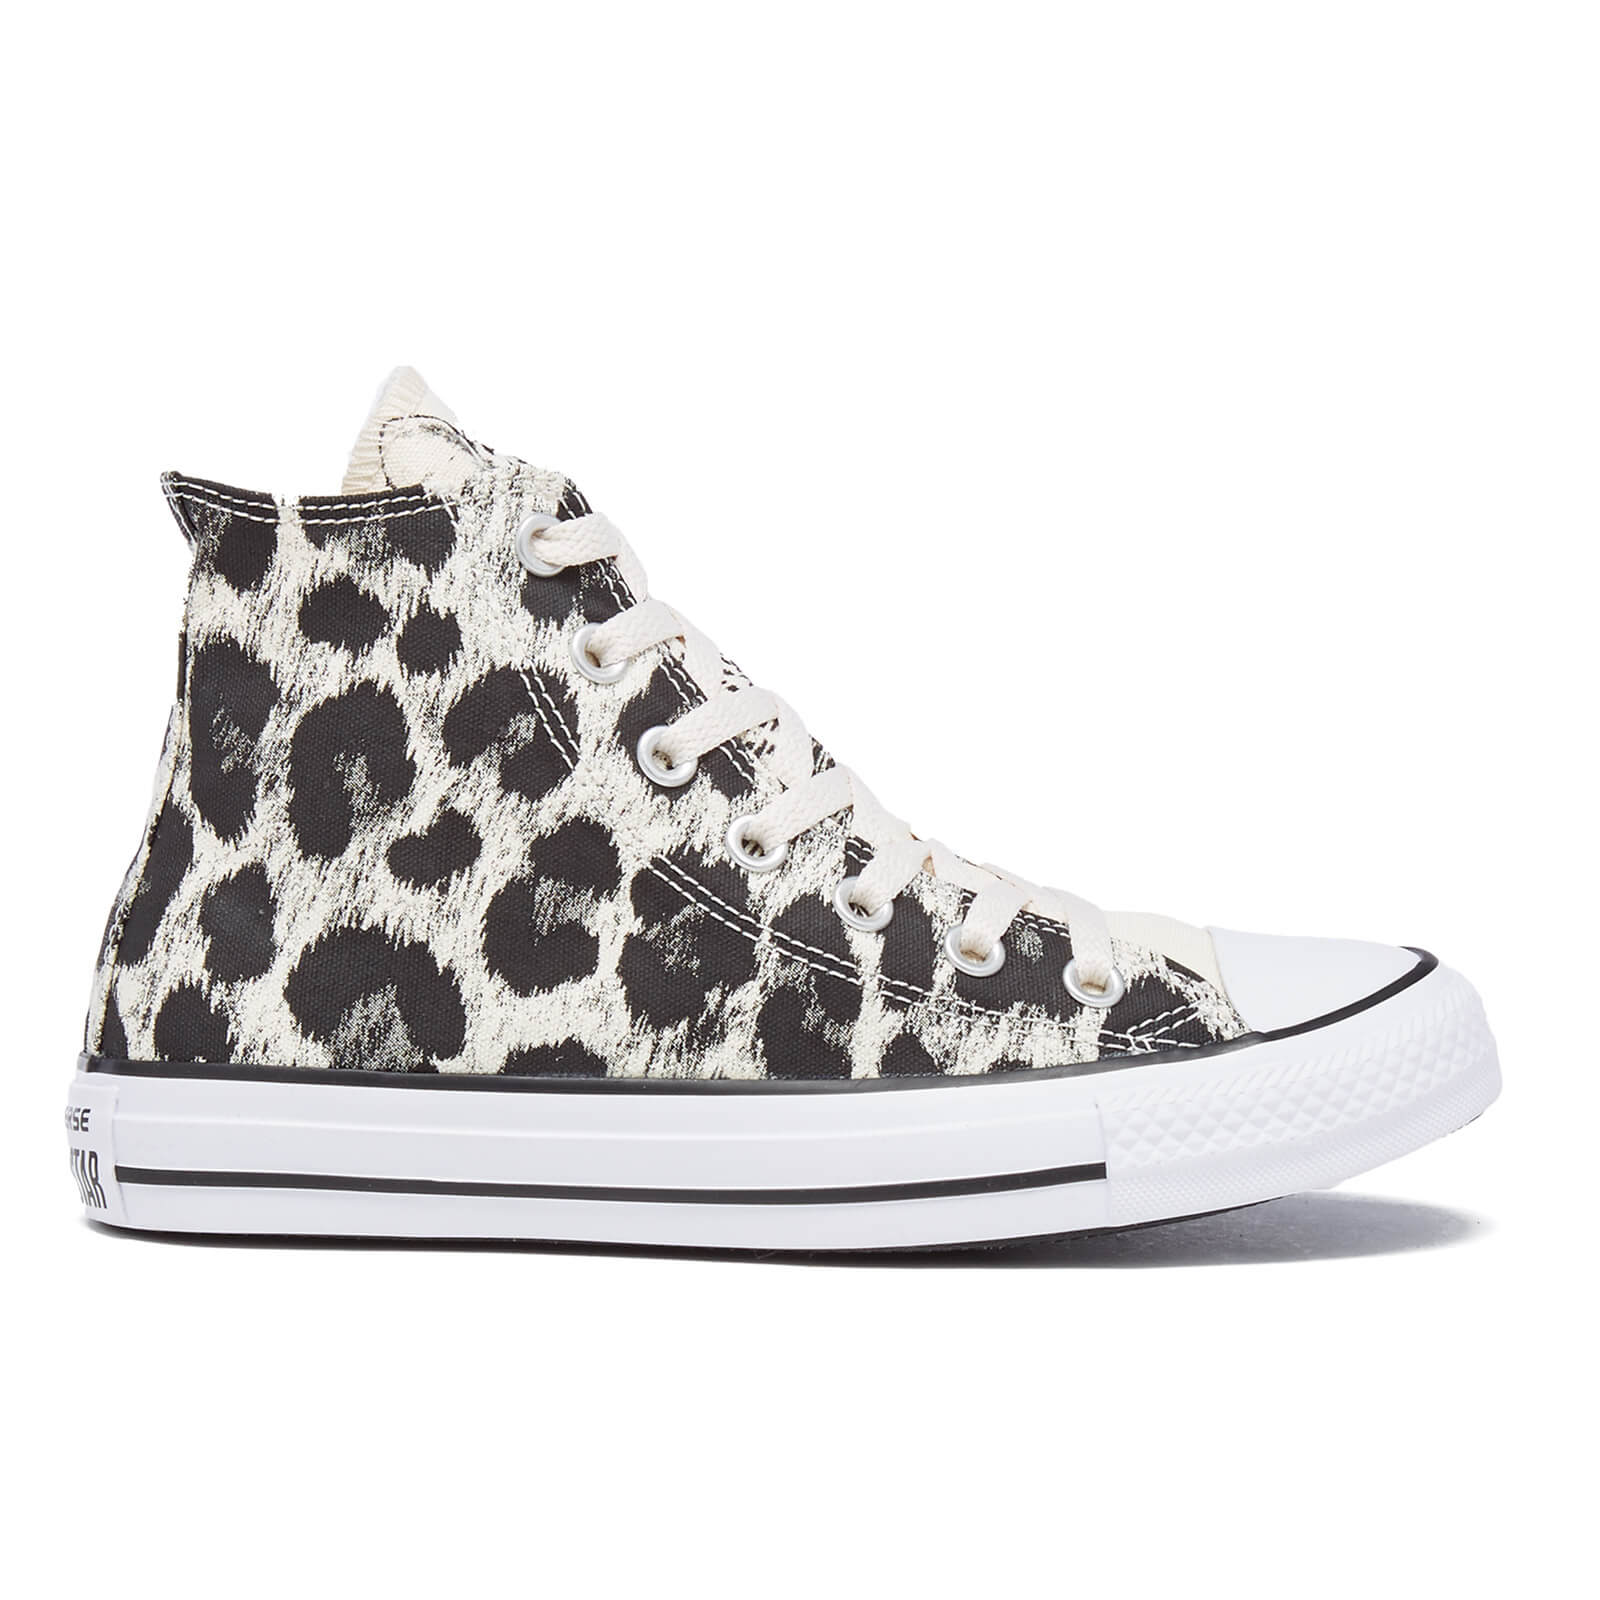 75b29d1d7996 Converse Women s Chuck Taylor All Star Animal Print Hi-Top Trainers -  Parchment Black White - Free UK Delivery over £50